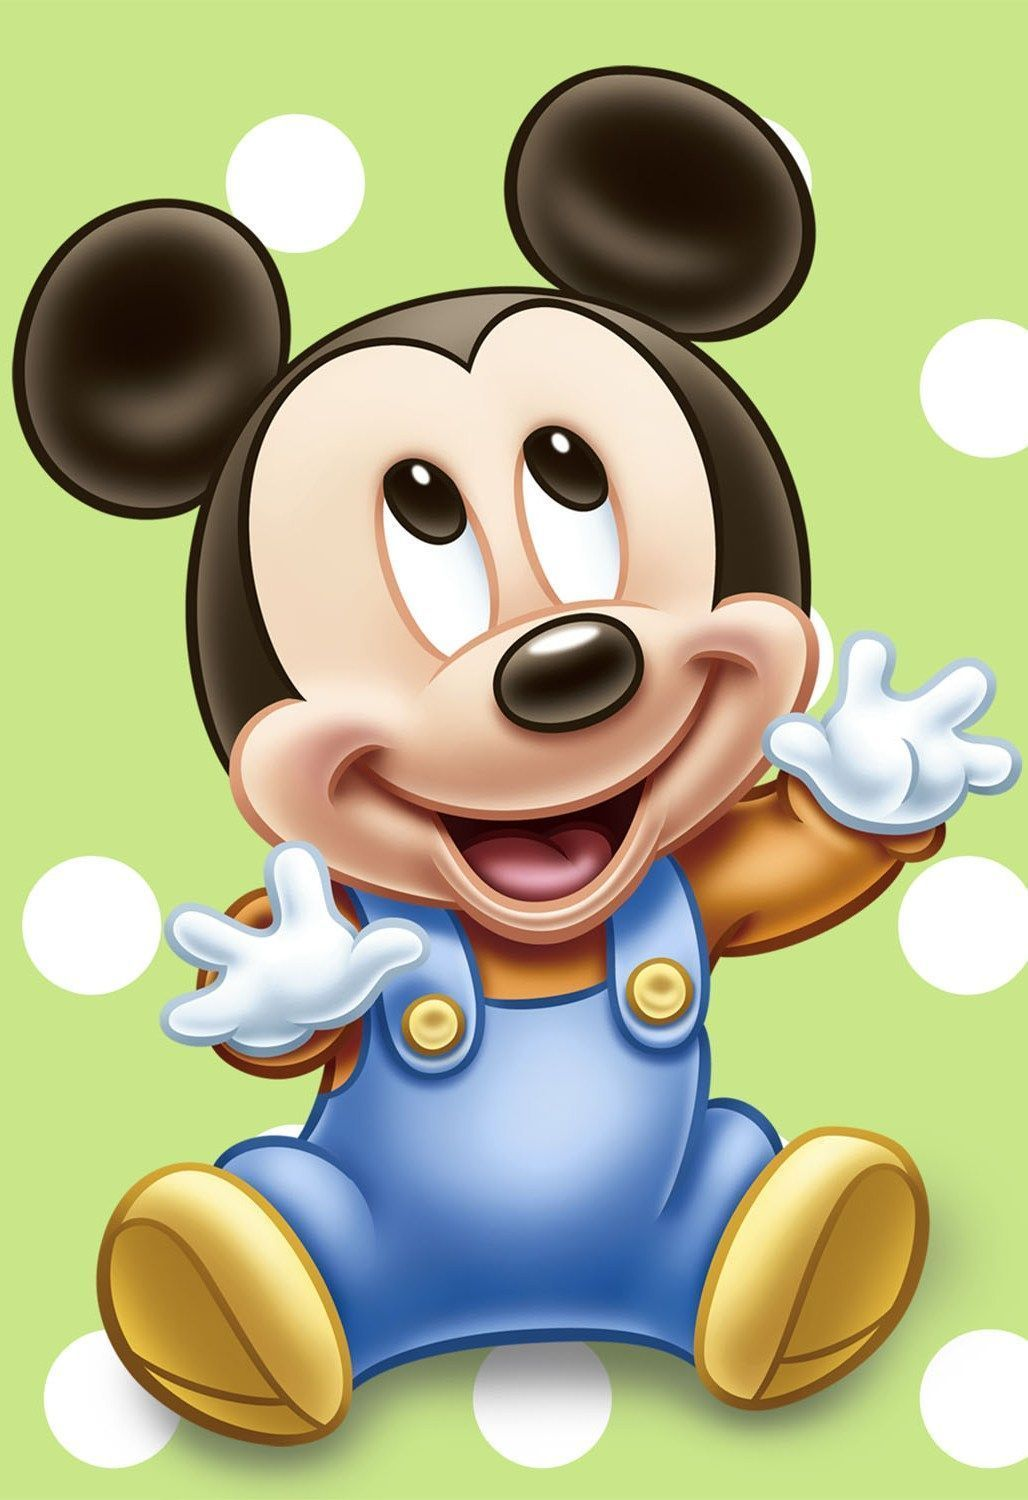 efb9fe4ef Mickey Mouse Baby Poster - 2 Sizes Available [01] Disney Kids Poster Pixar